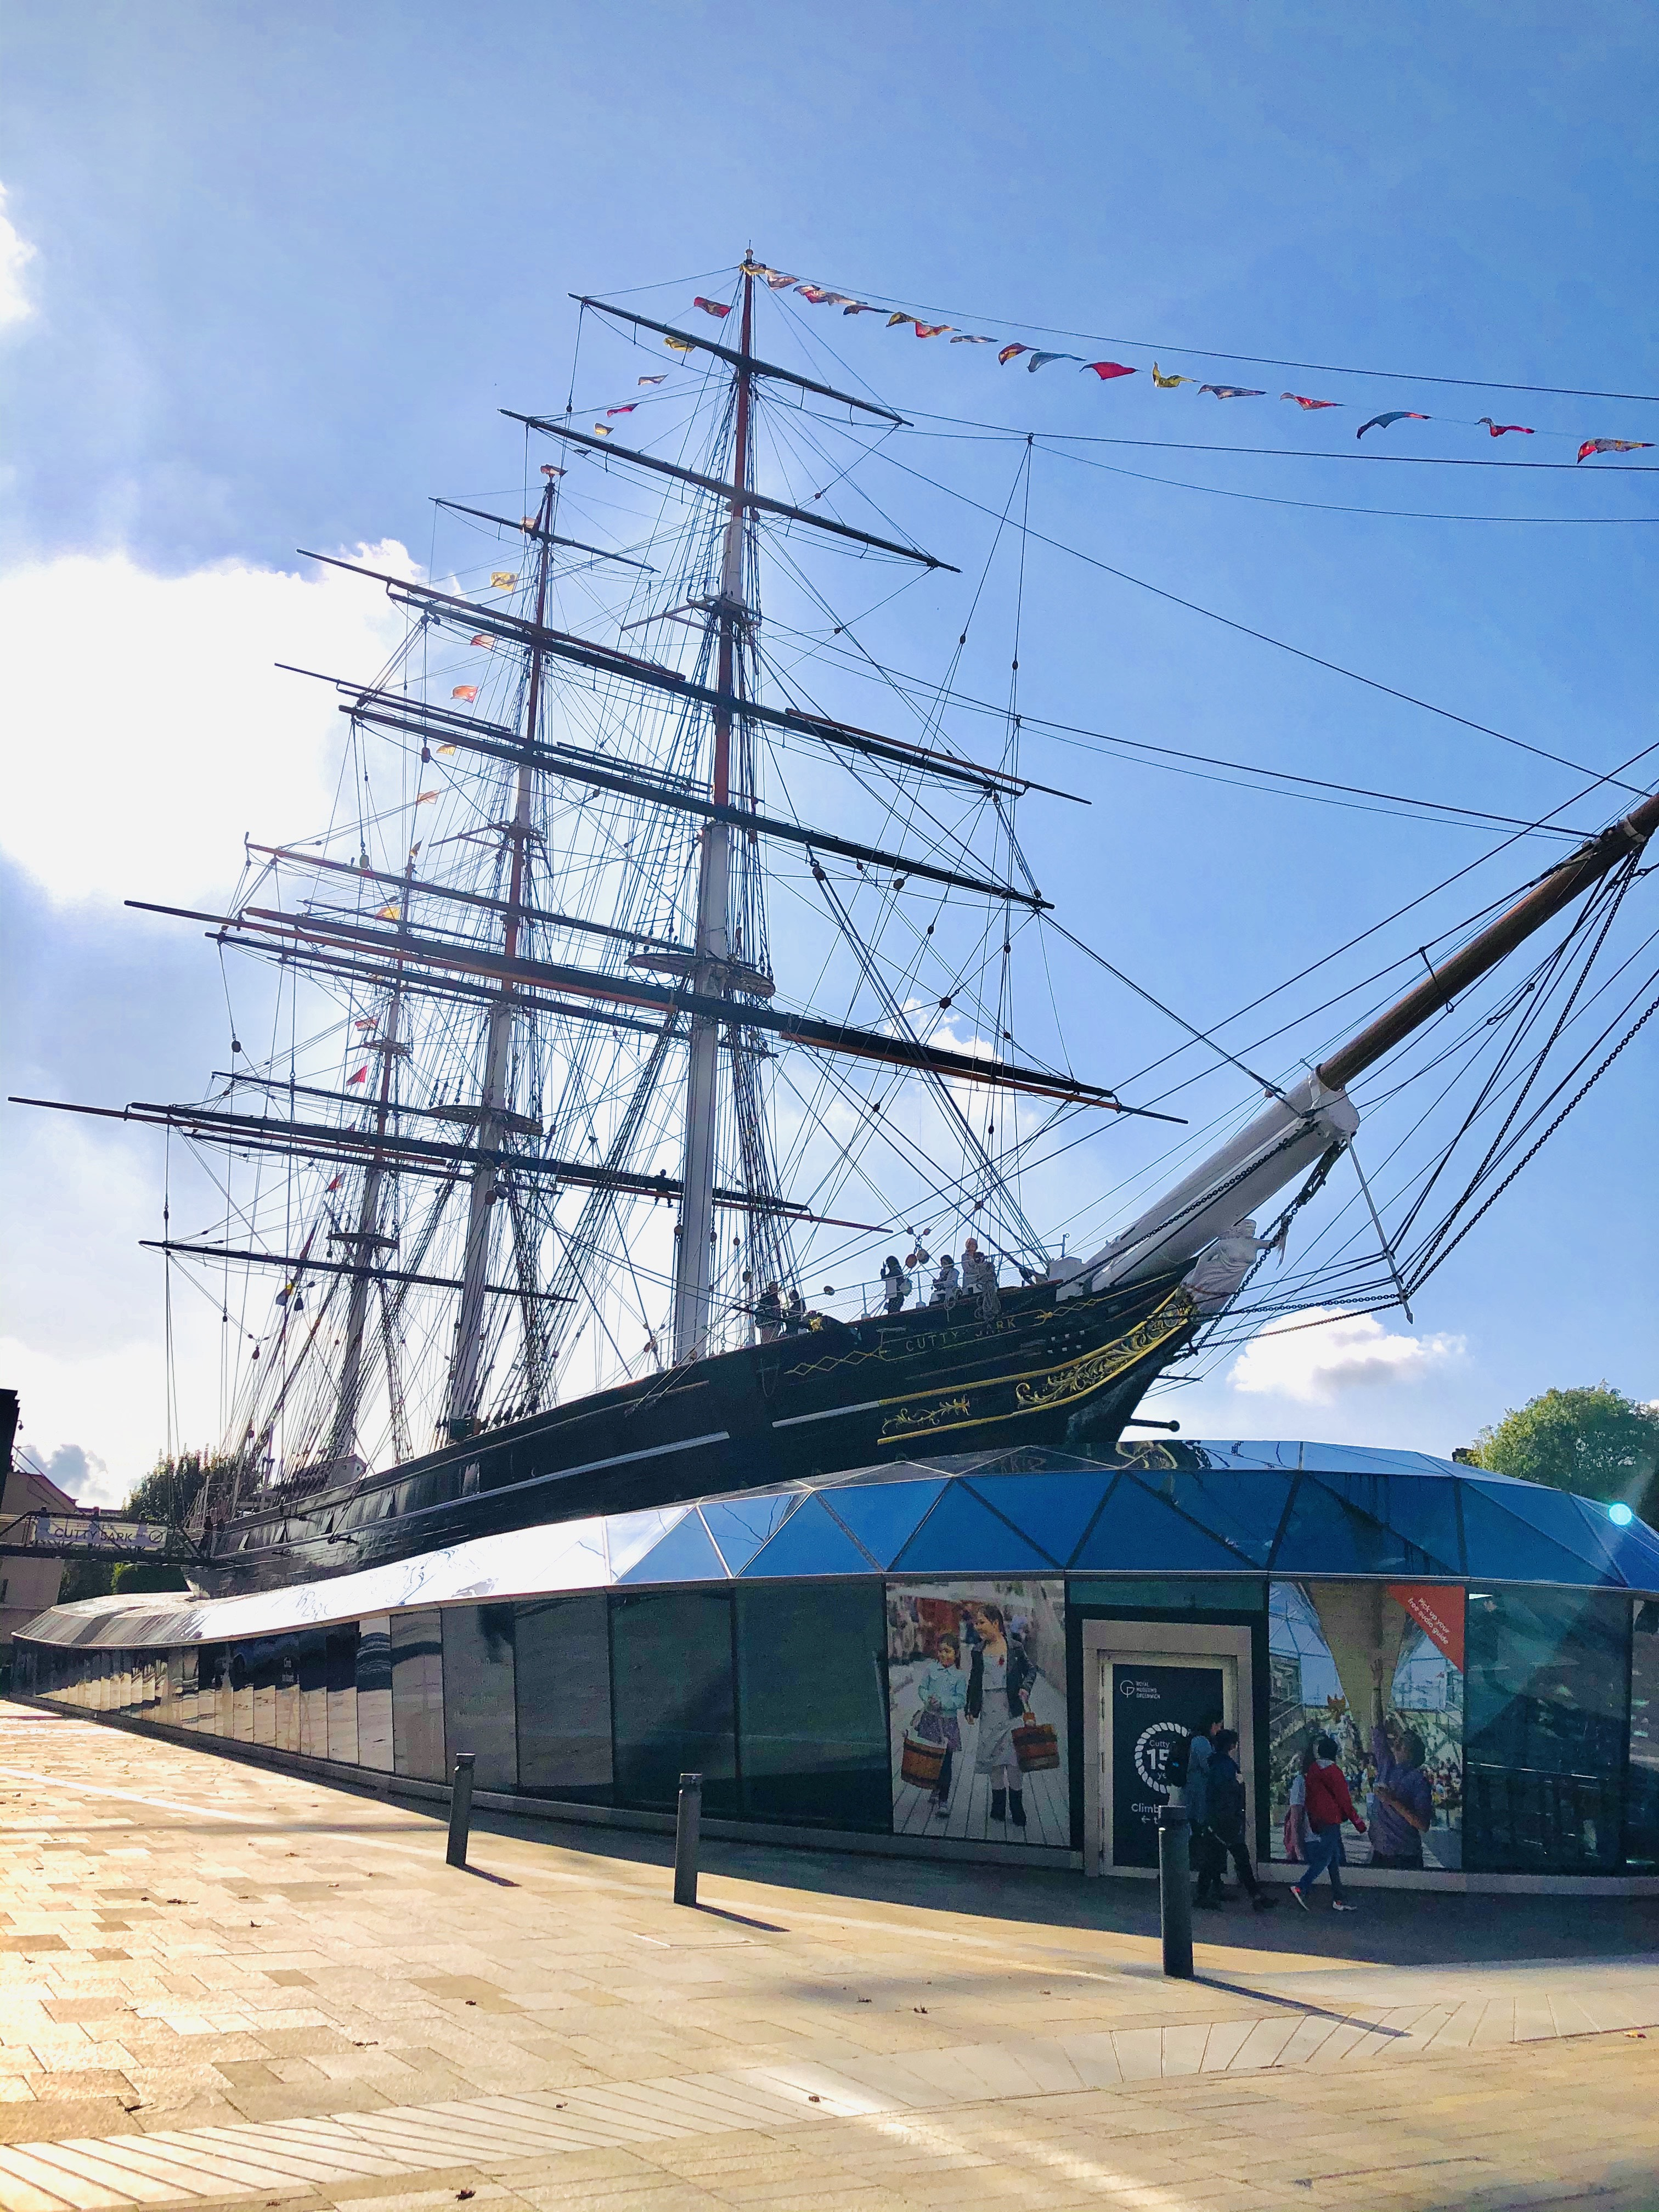 Time to explore the Cutty Sark